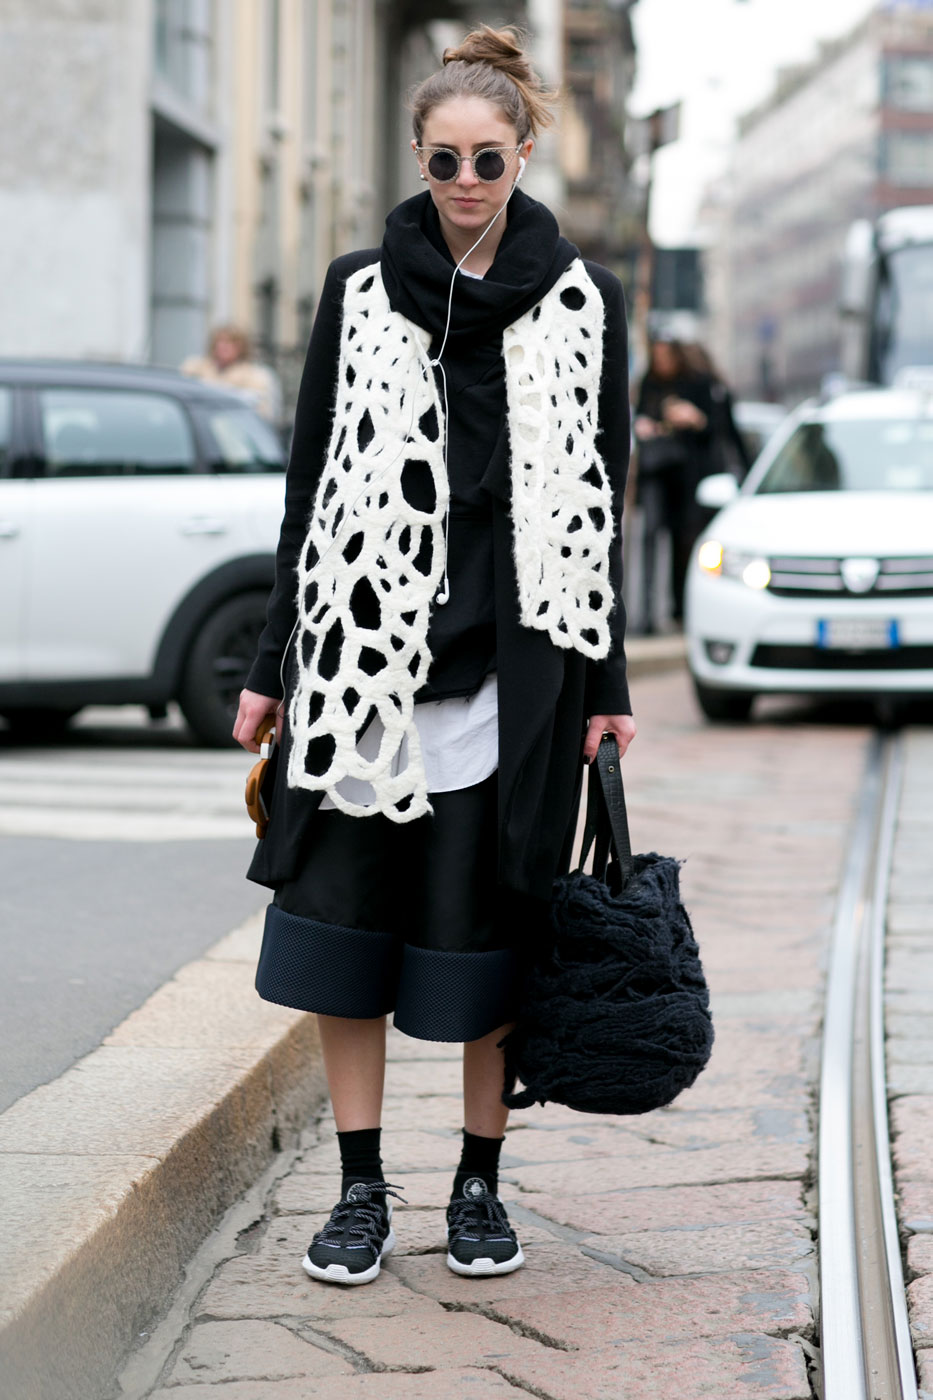 The Best Of Milan Fashion Week Street Style 2015 Day 4